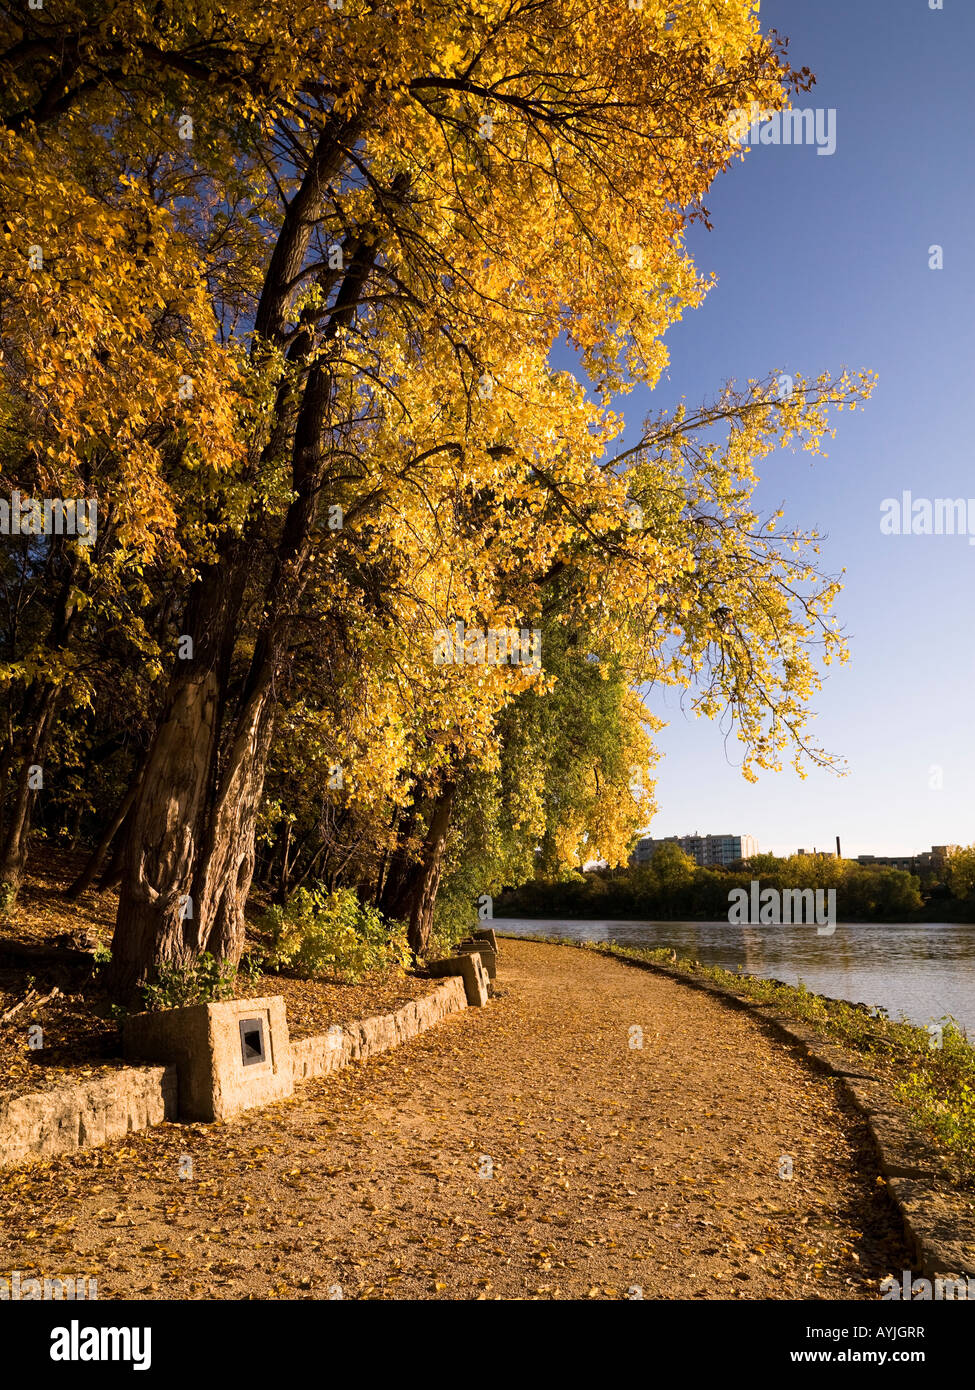 Path along a river, The Forks, Winnipeg, Manitoba, Canada - Stock Image